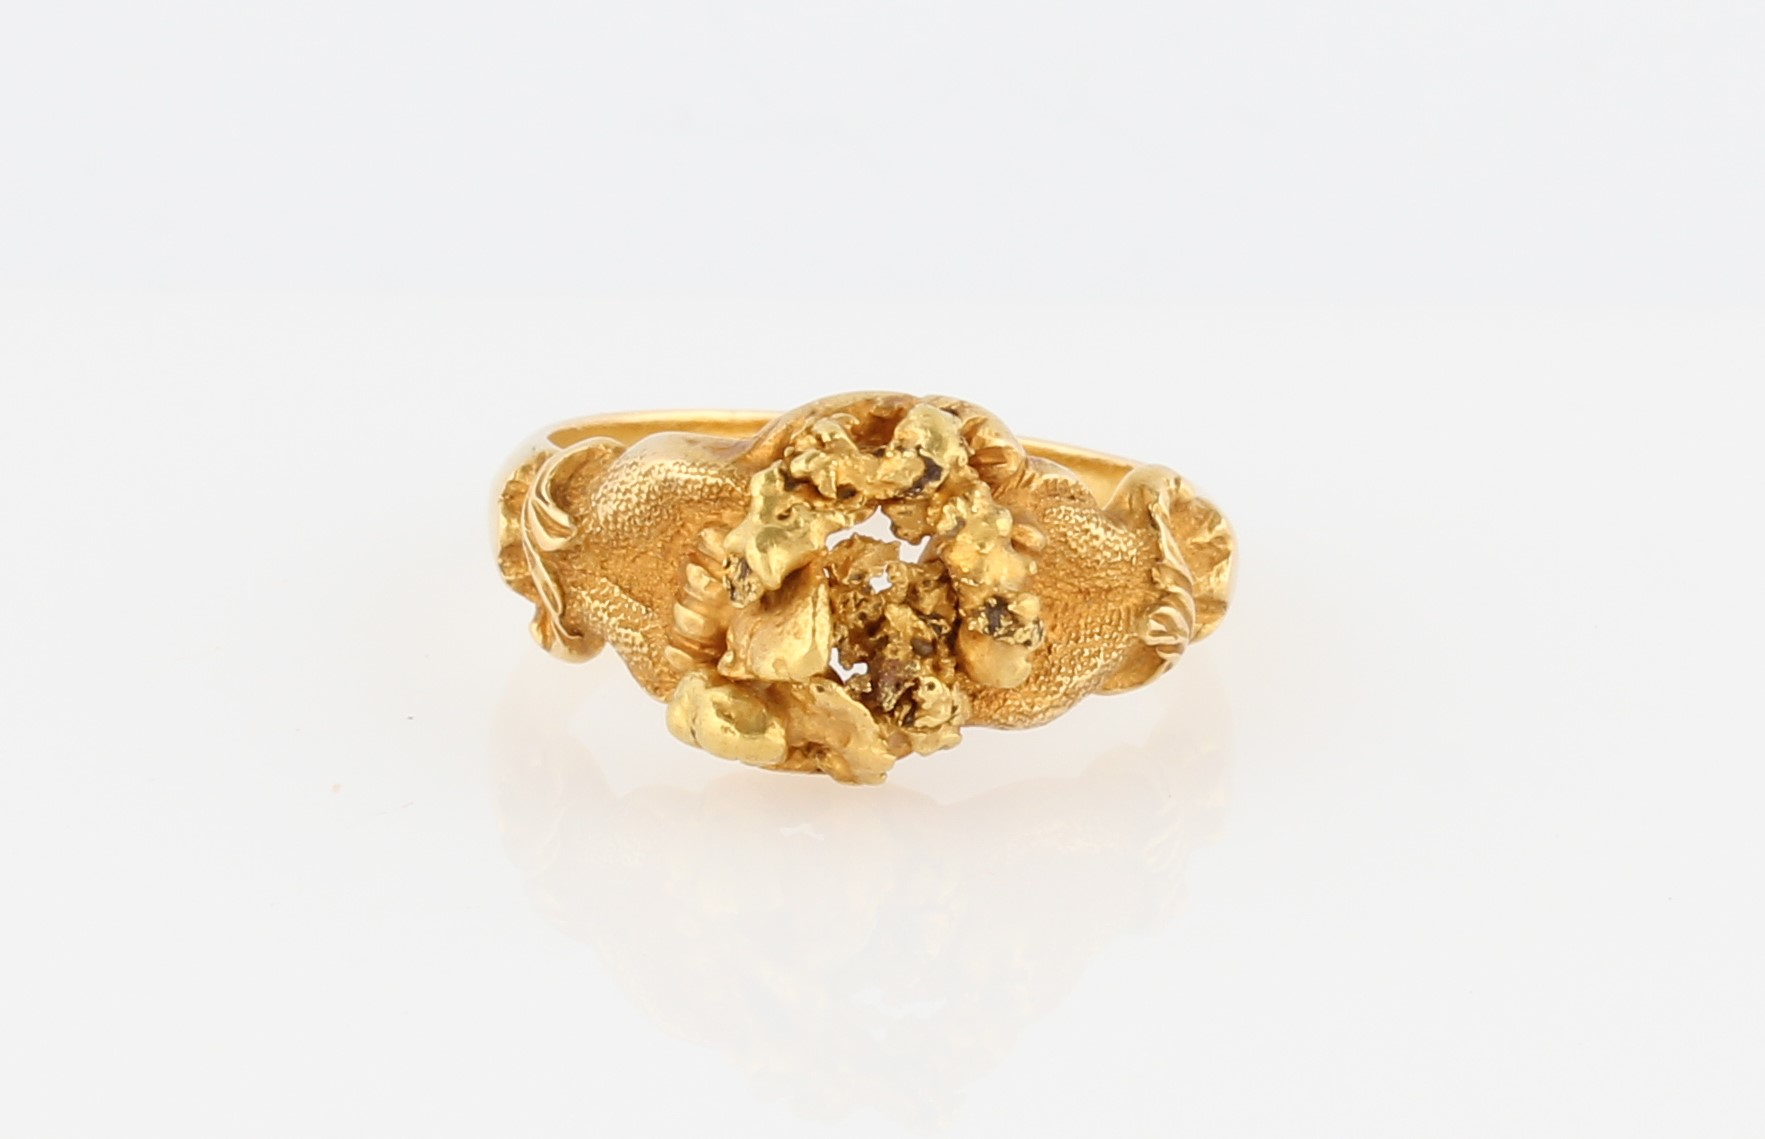 Lot 45 - A nugget design ring, unmarked yellow metal, ring size N.